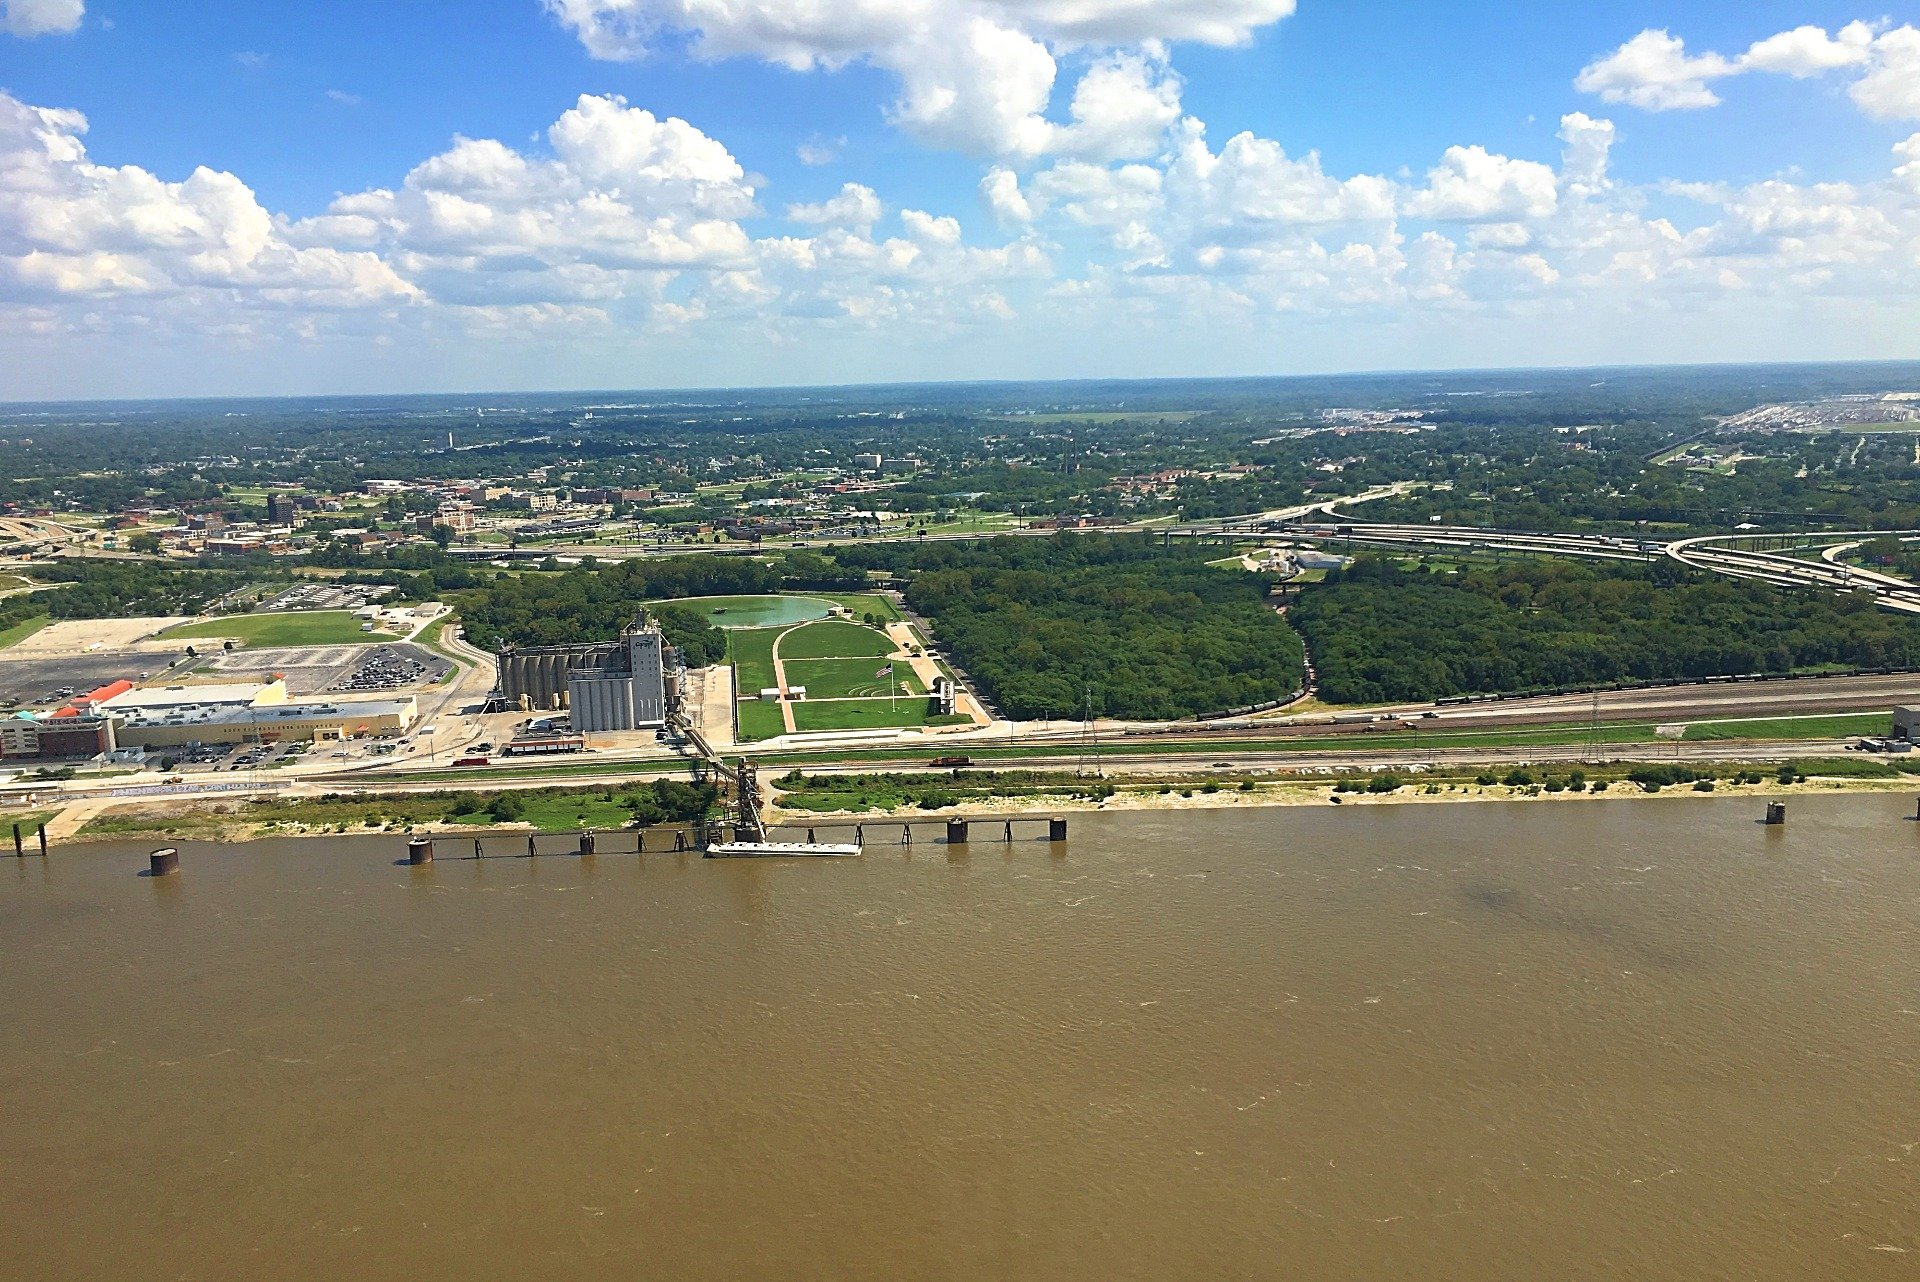 View of the Mississippi River from the top of the arch.